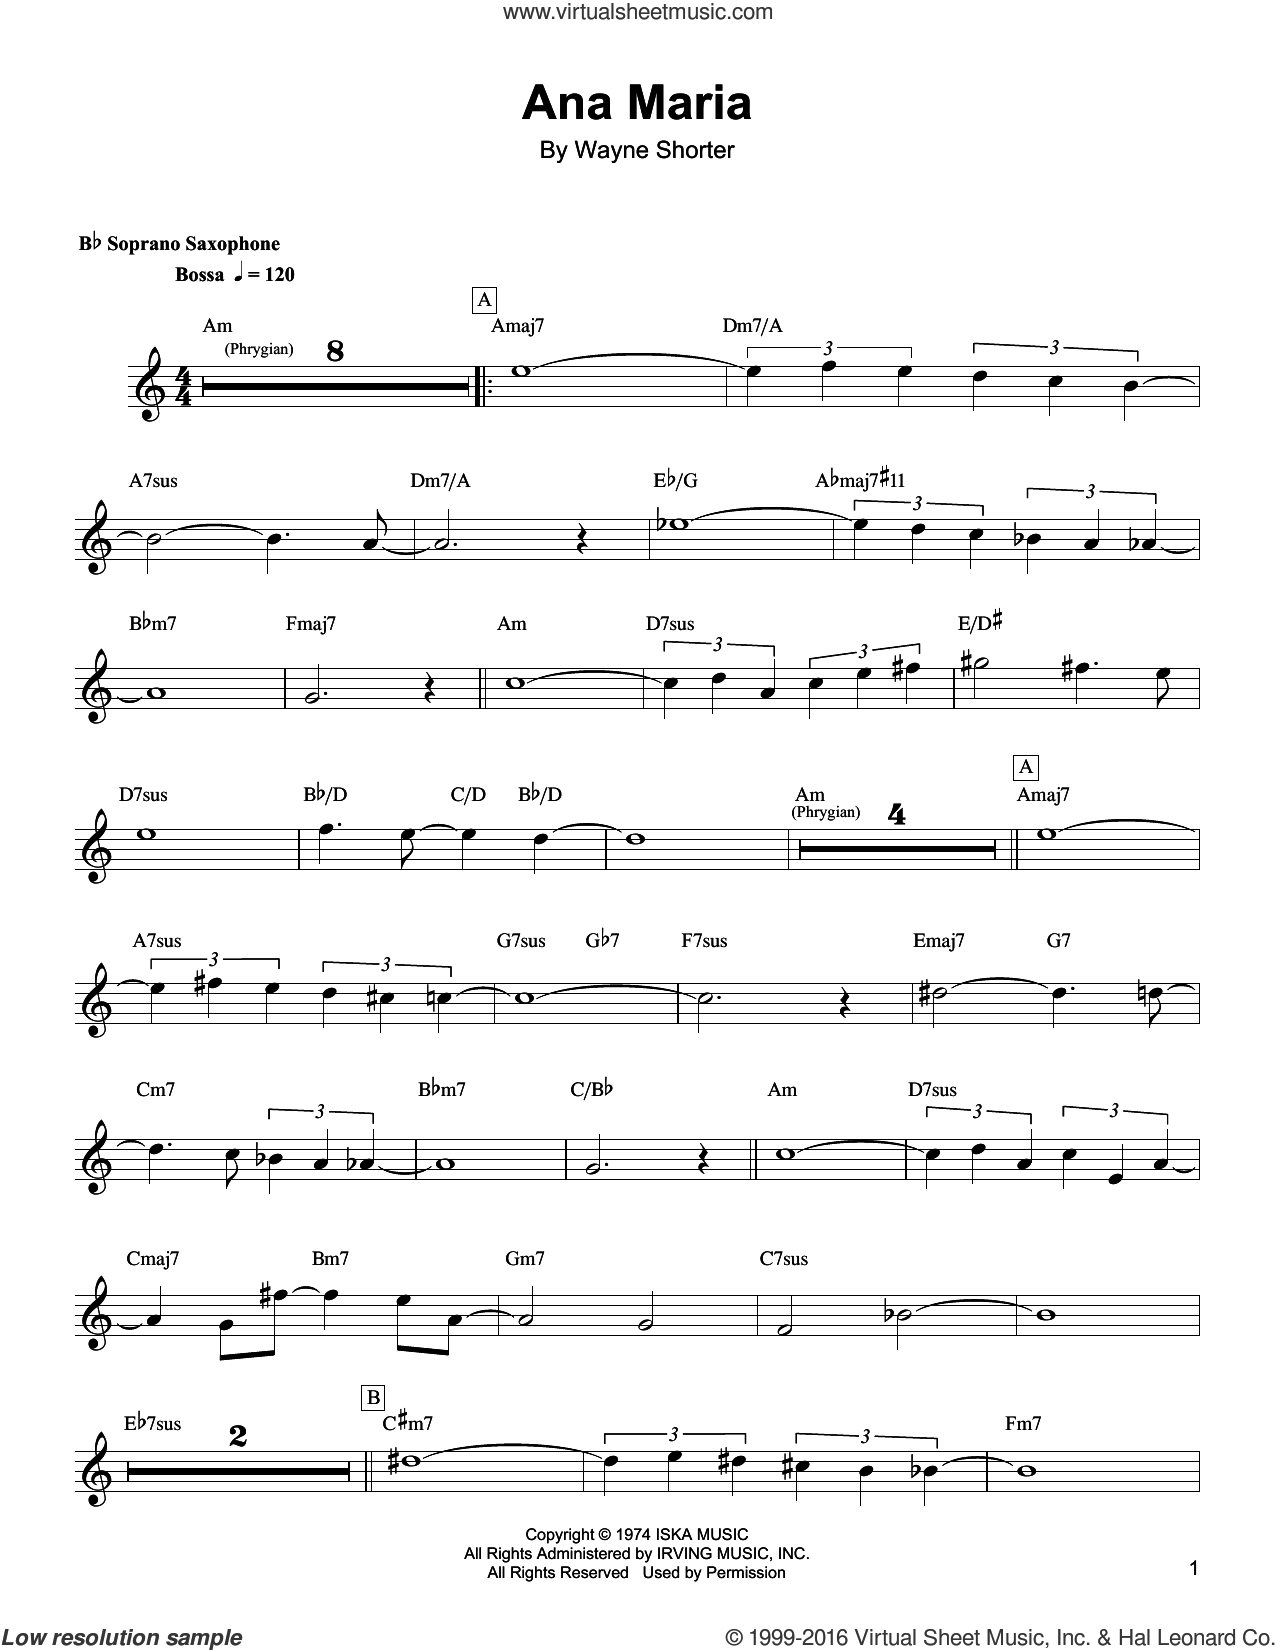 Ana Maria sheet music for soprano saxophone solo (transcription) by Wayne Shorter. Score Image Preview.